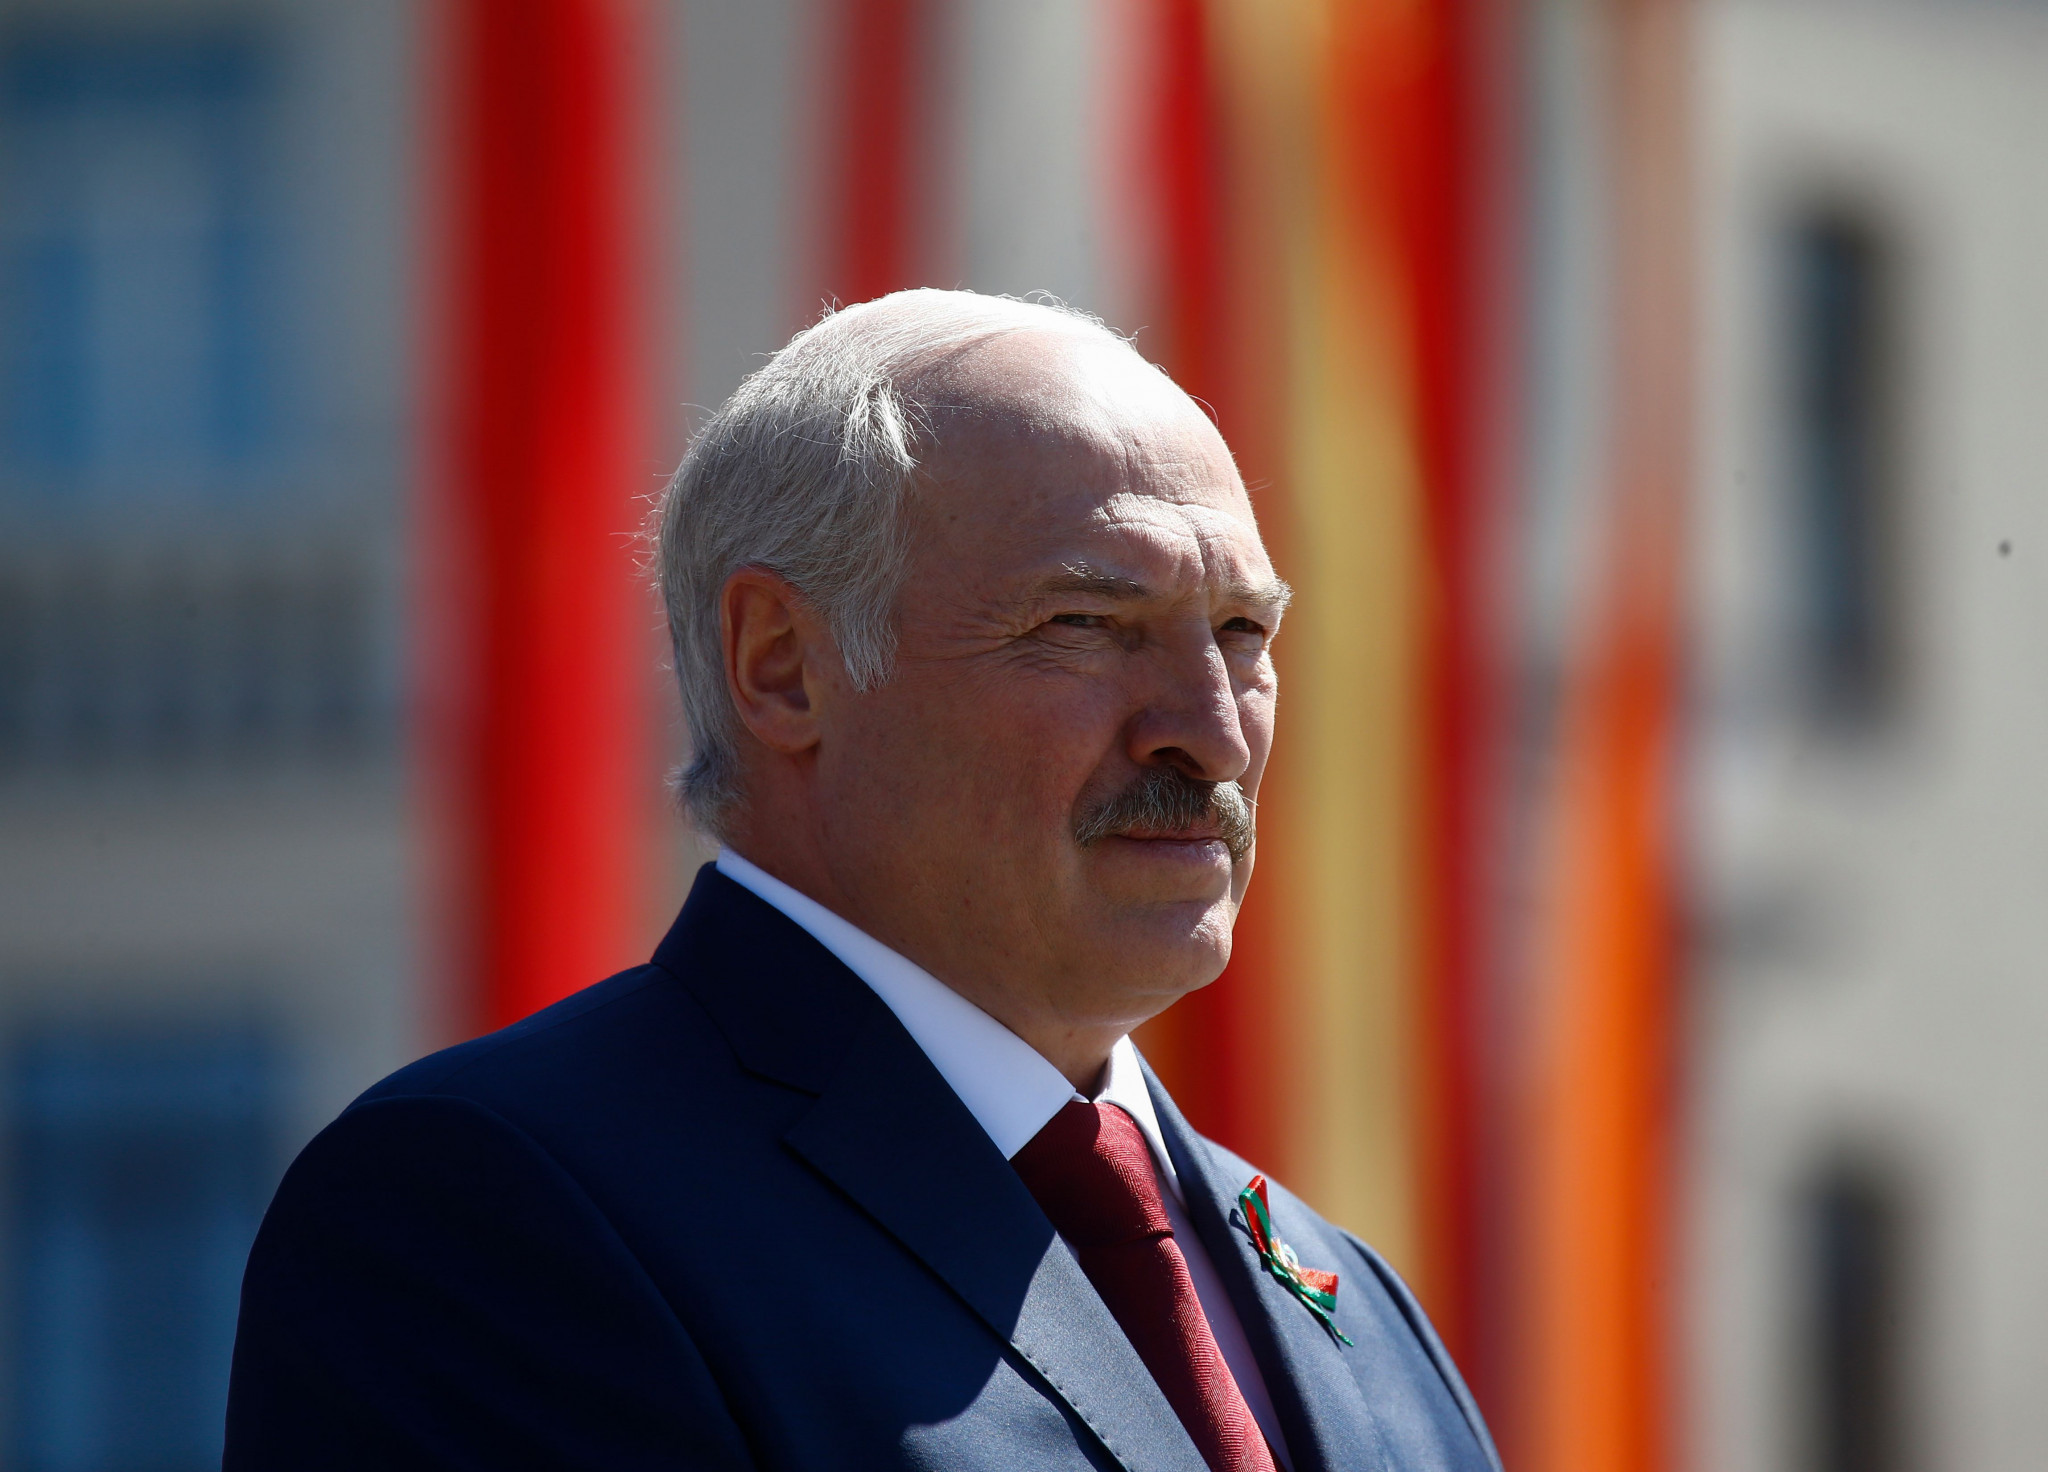 Concerns have been raised by organisations over human rights in Belarus, which is led by Alexander Lukashenko ©Getty Images